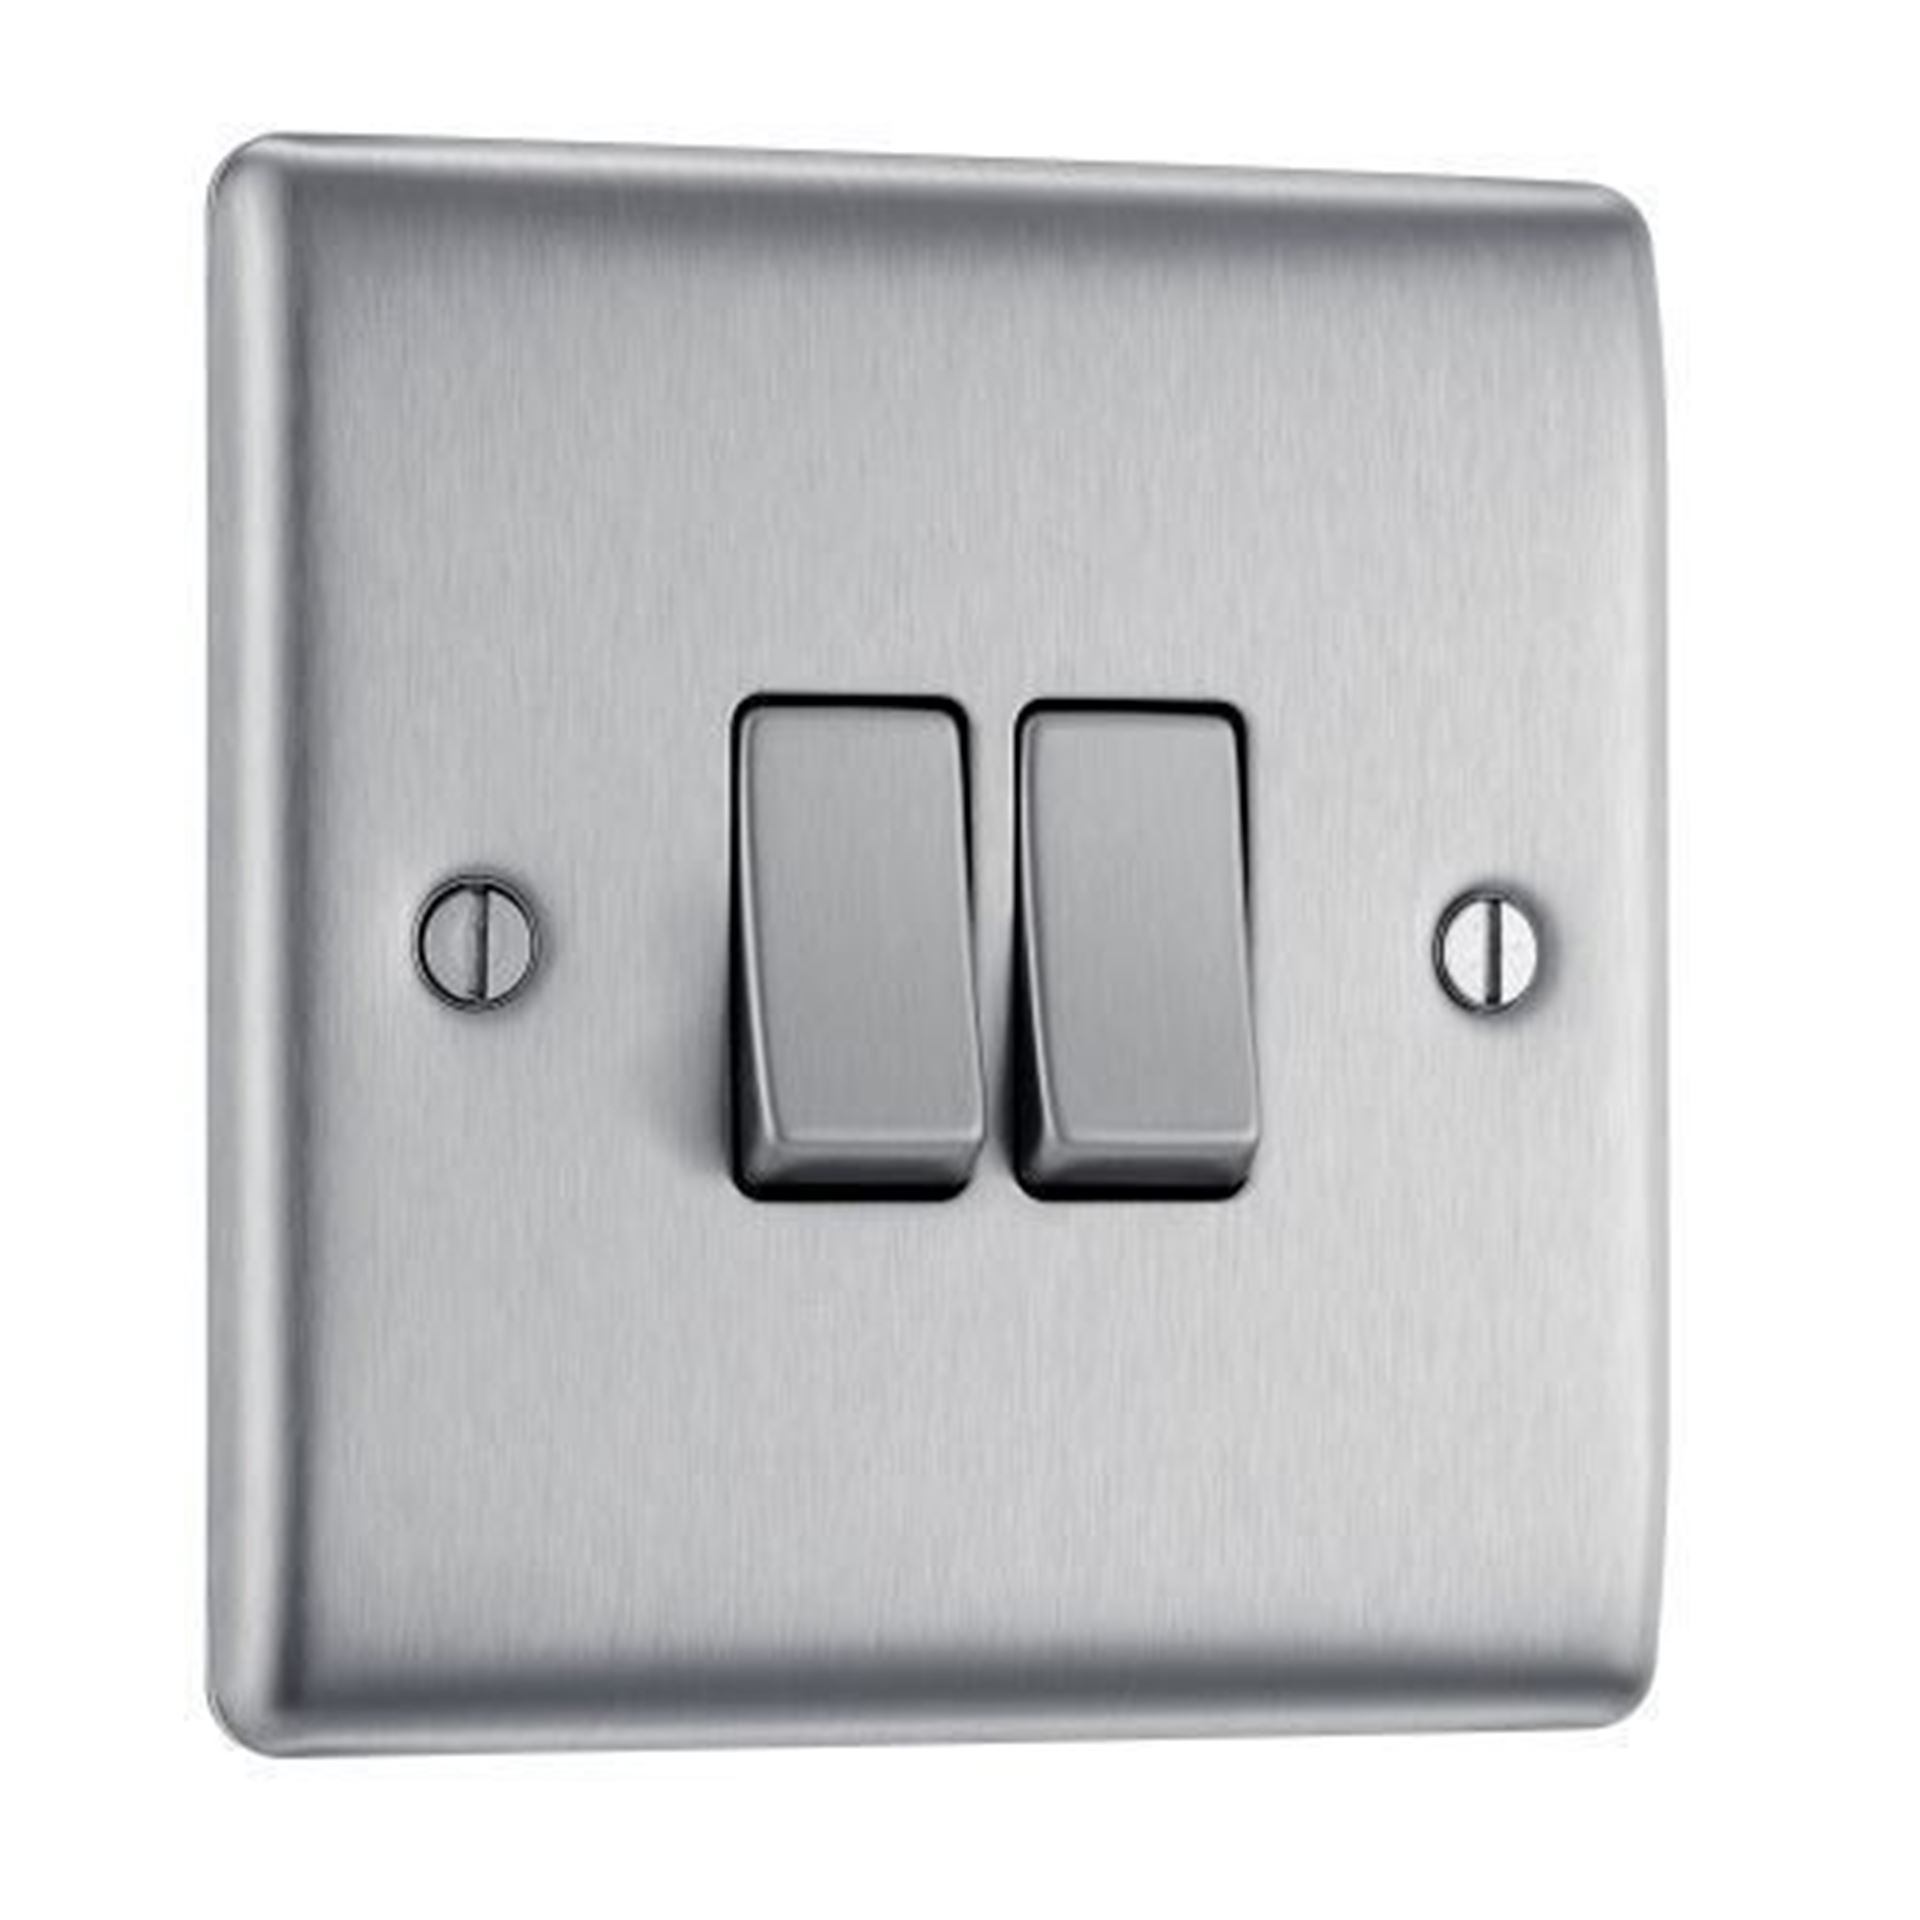 NBS42 BRUSHED CHROME 10X 2 GANG 2 WAY PLATE SWITCH